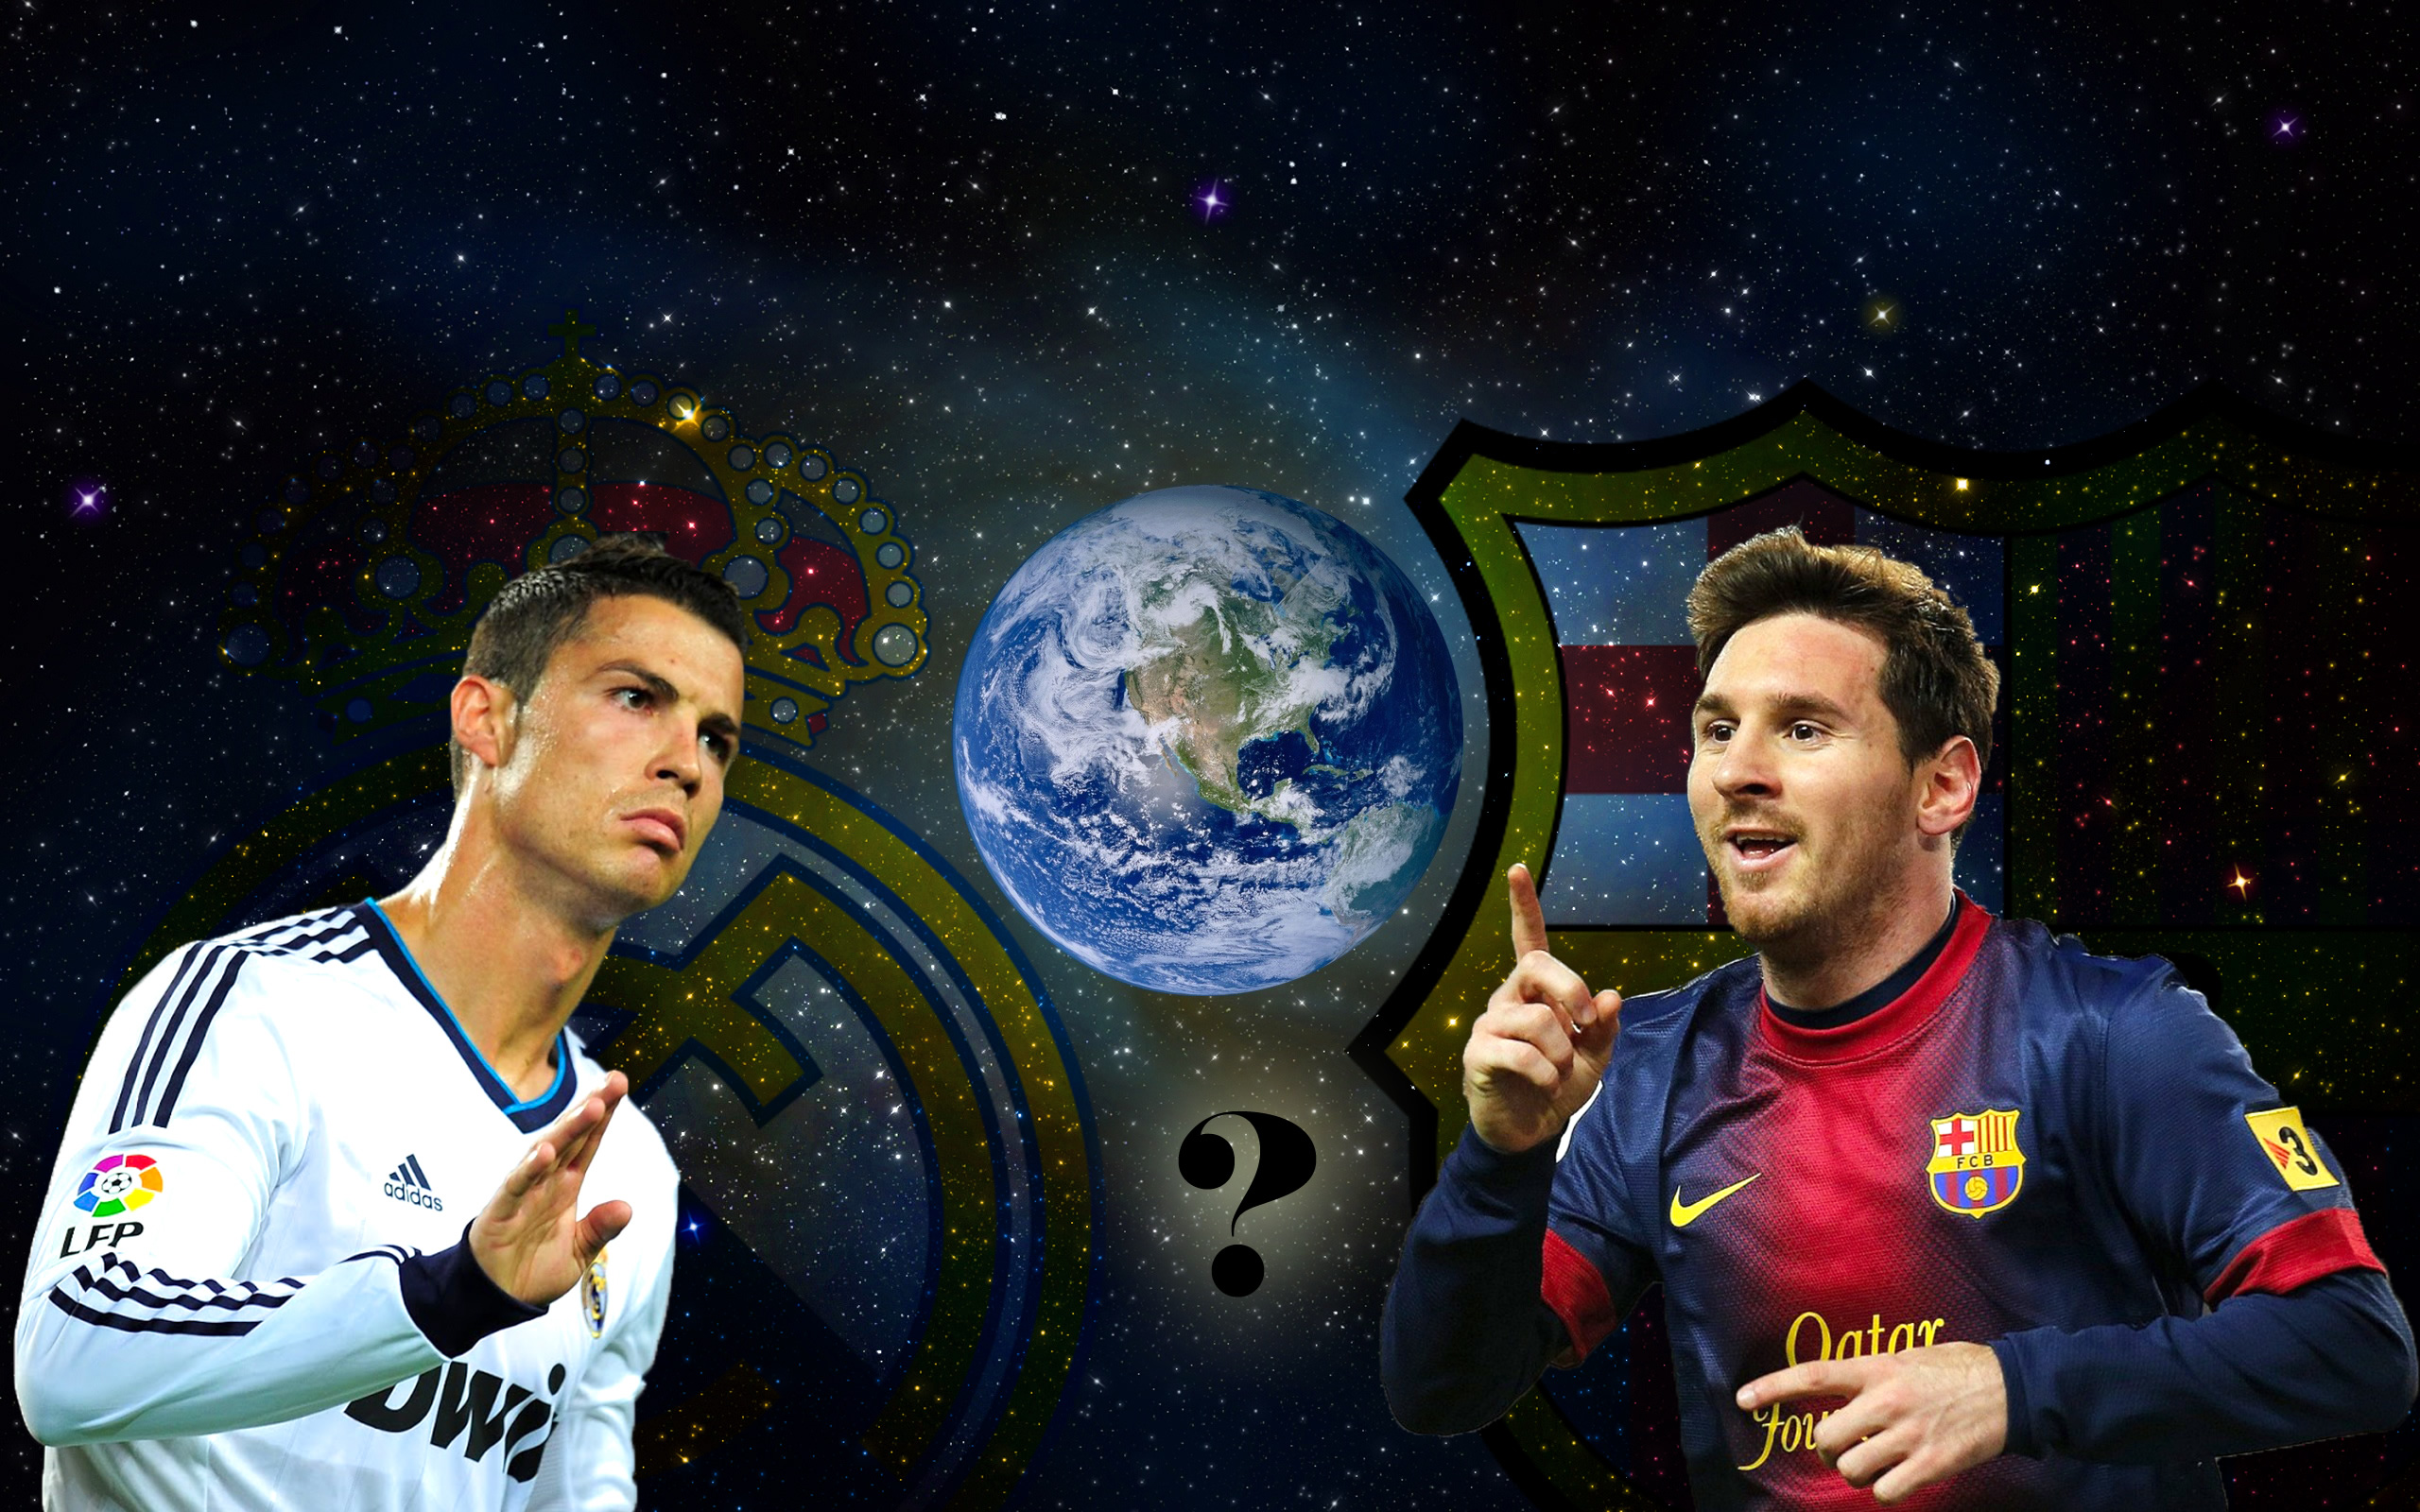 Cristiano Ronaldo versus Lionel Messi wallpaper Messi Vs Ronaldo